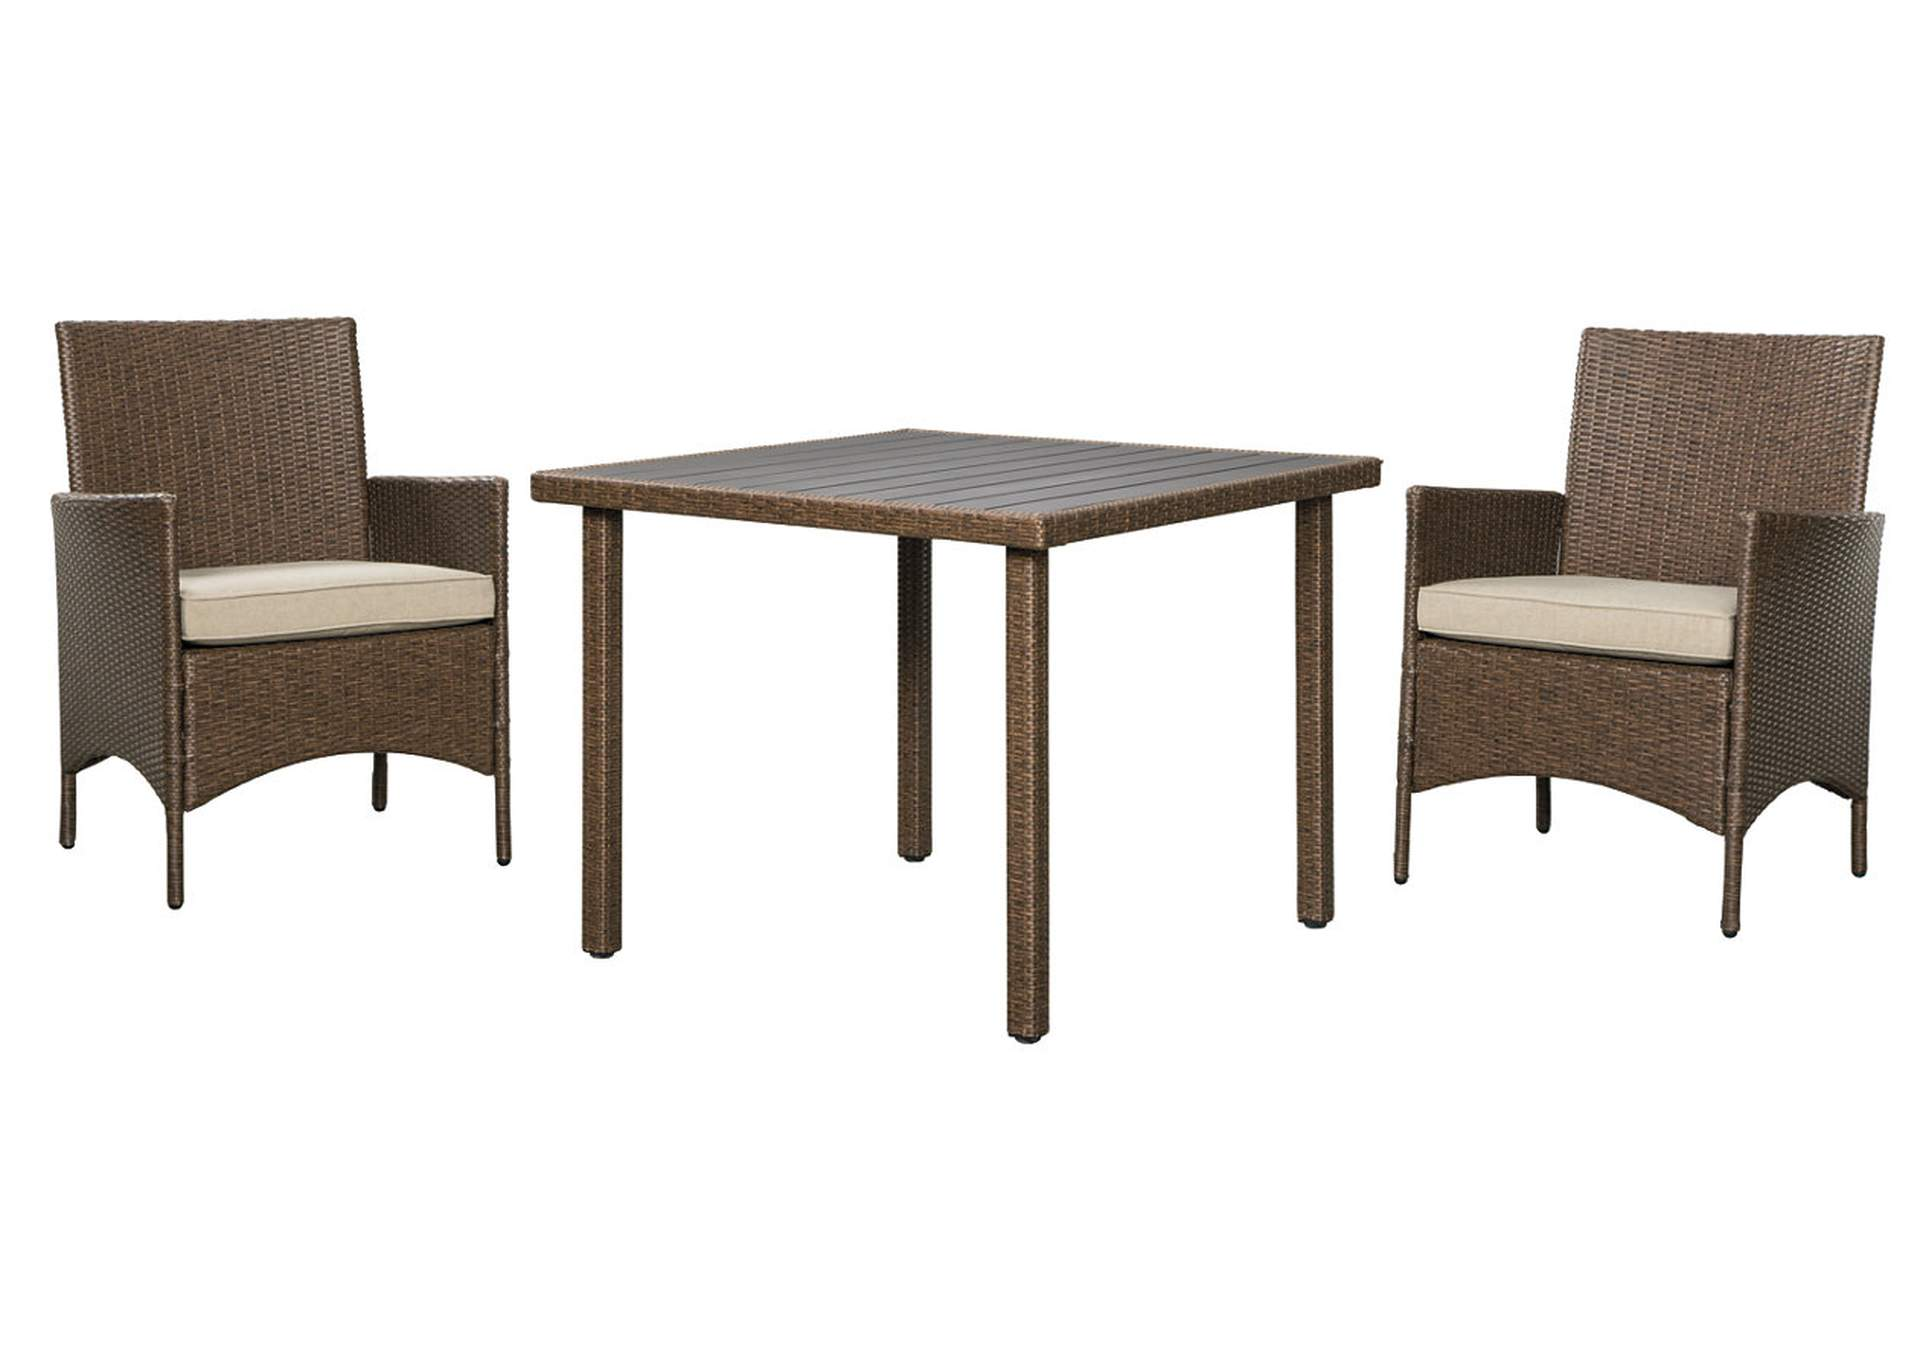 Reedenhurst Brown 3-Piece Dining Table Set,Outdoor By Ashley